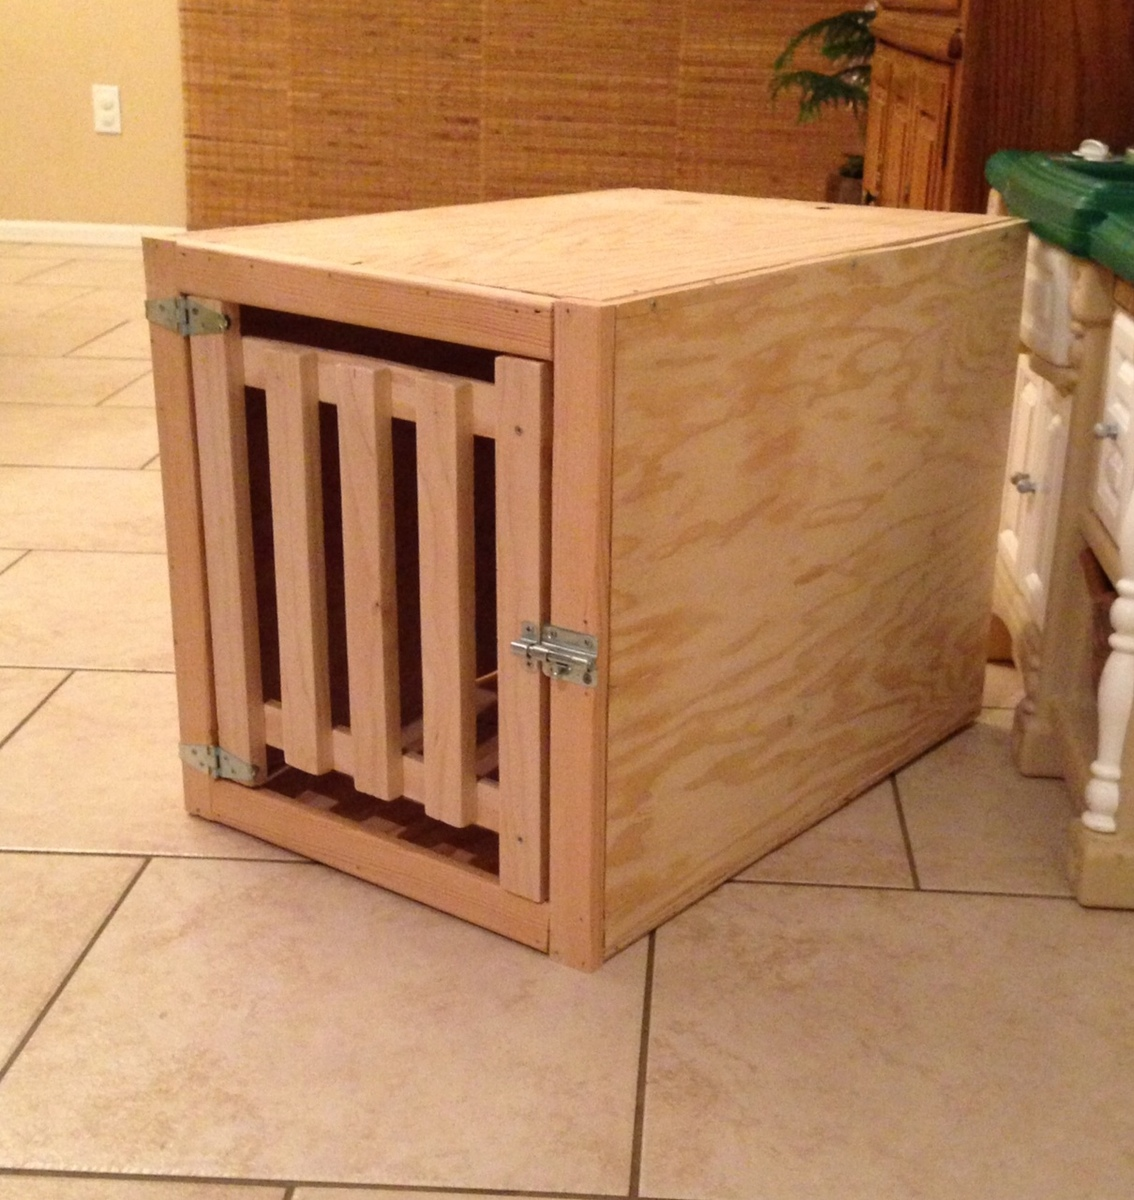 diy end table dog crate | Woodworking Project North Carolina